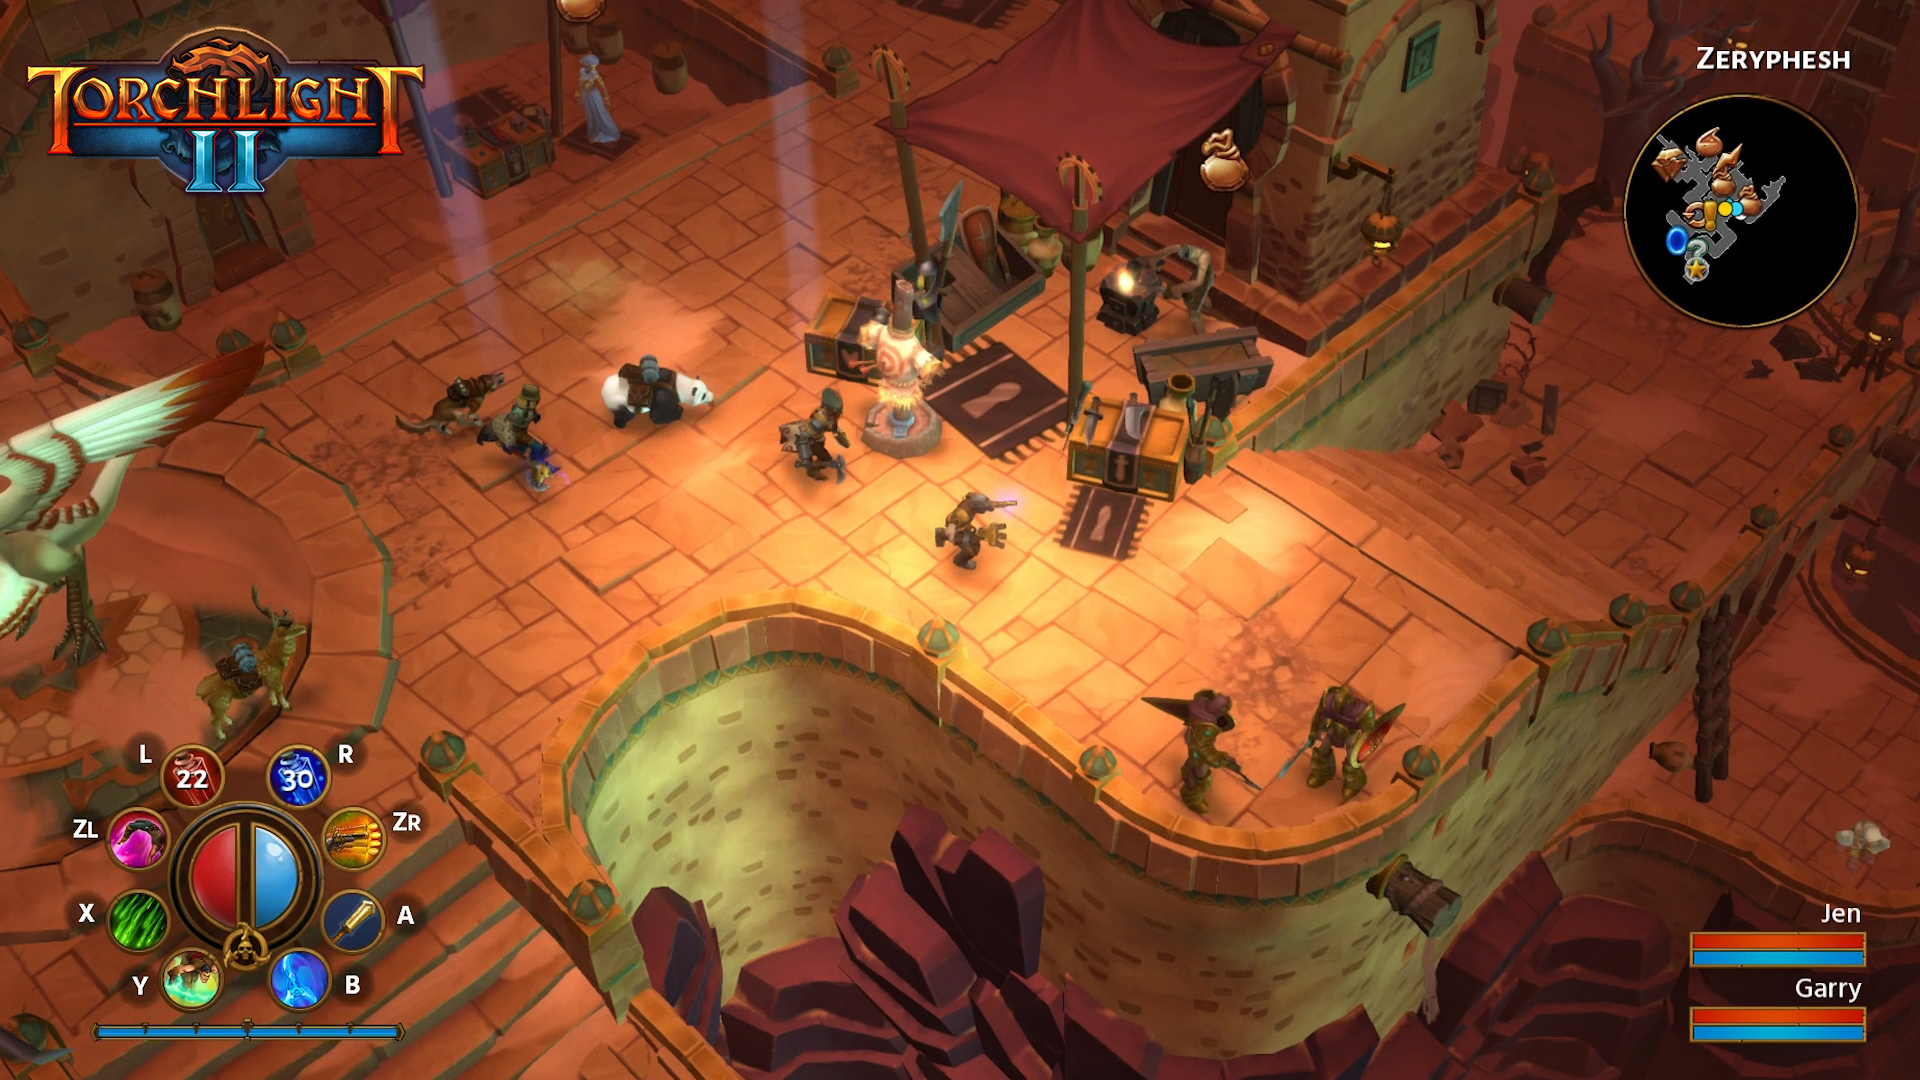 Torchlight 2 Nintendo Switch Hands-on Preview - Portable Dungeons Fun